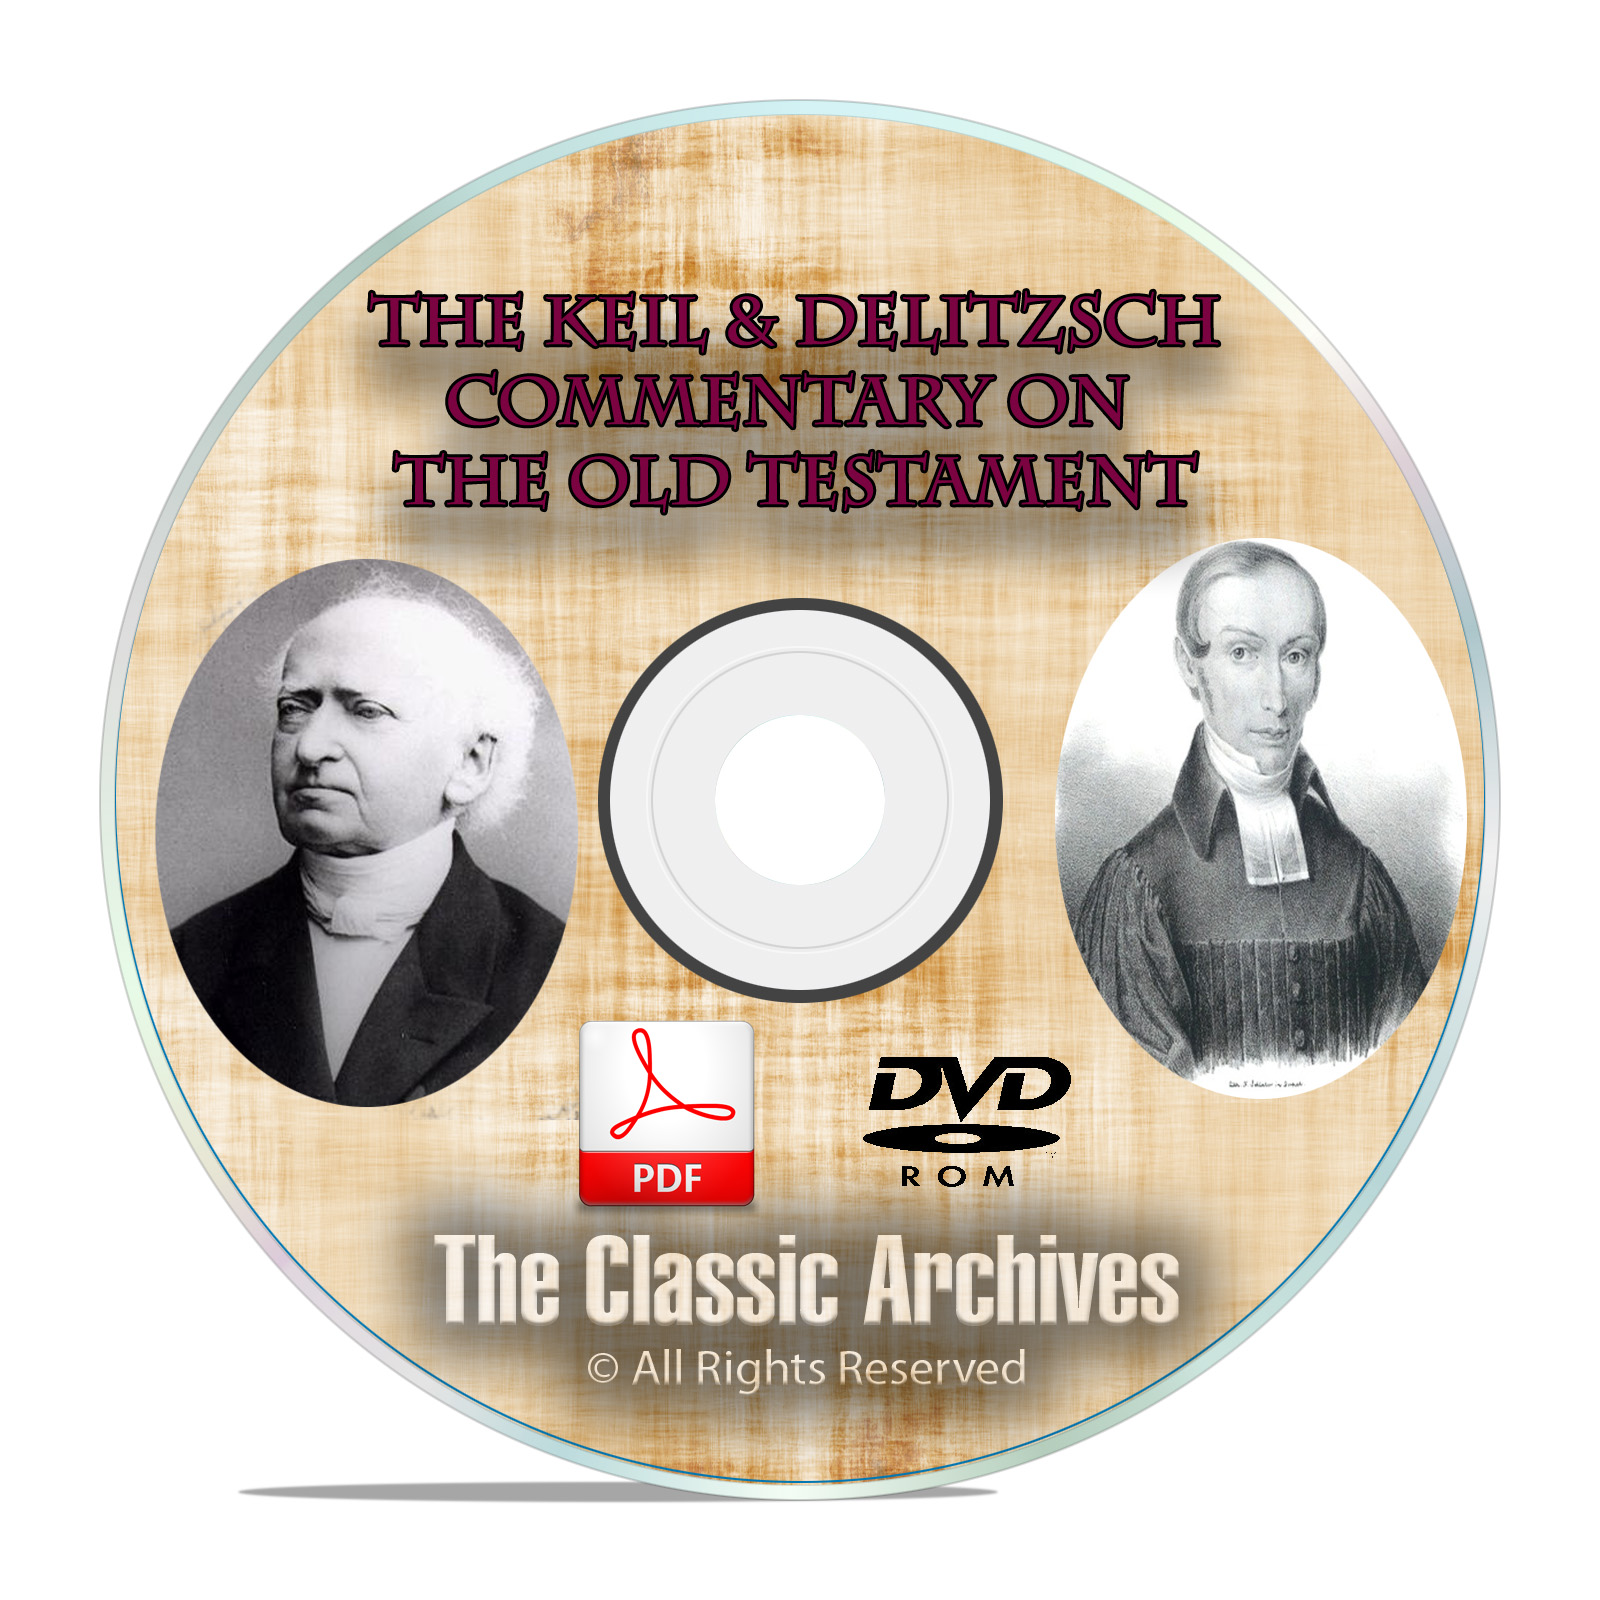 Keil & Delitzsch Commentary on Old Testament, Christian Bible Study DVD-ROM